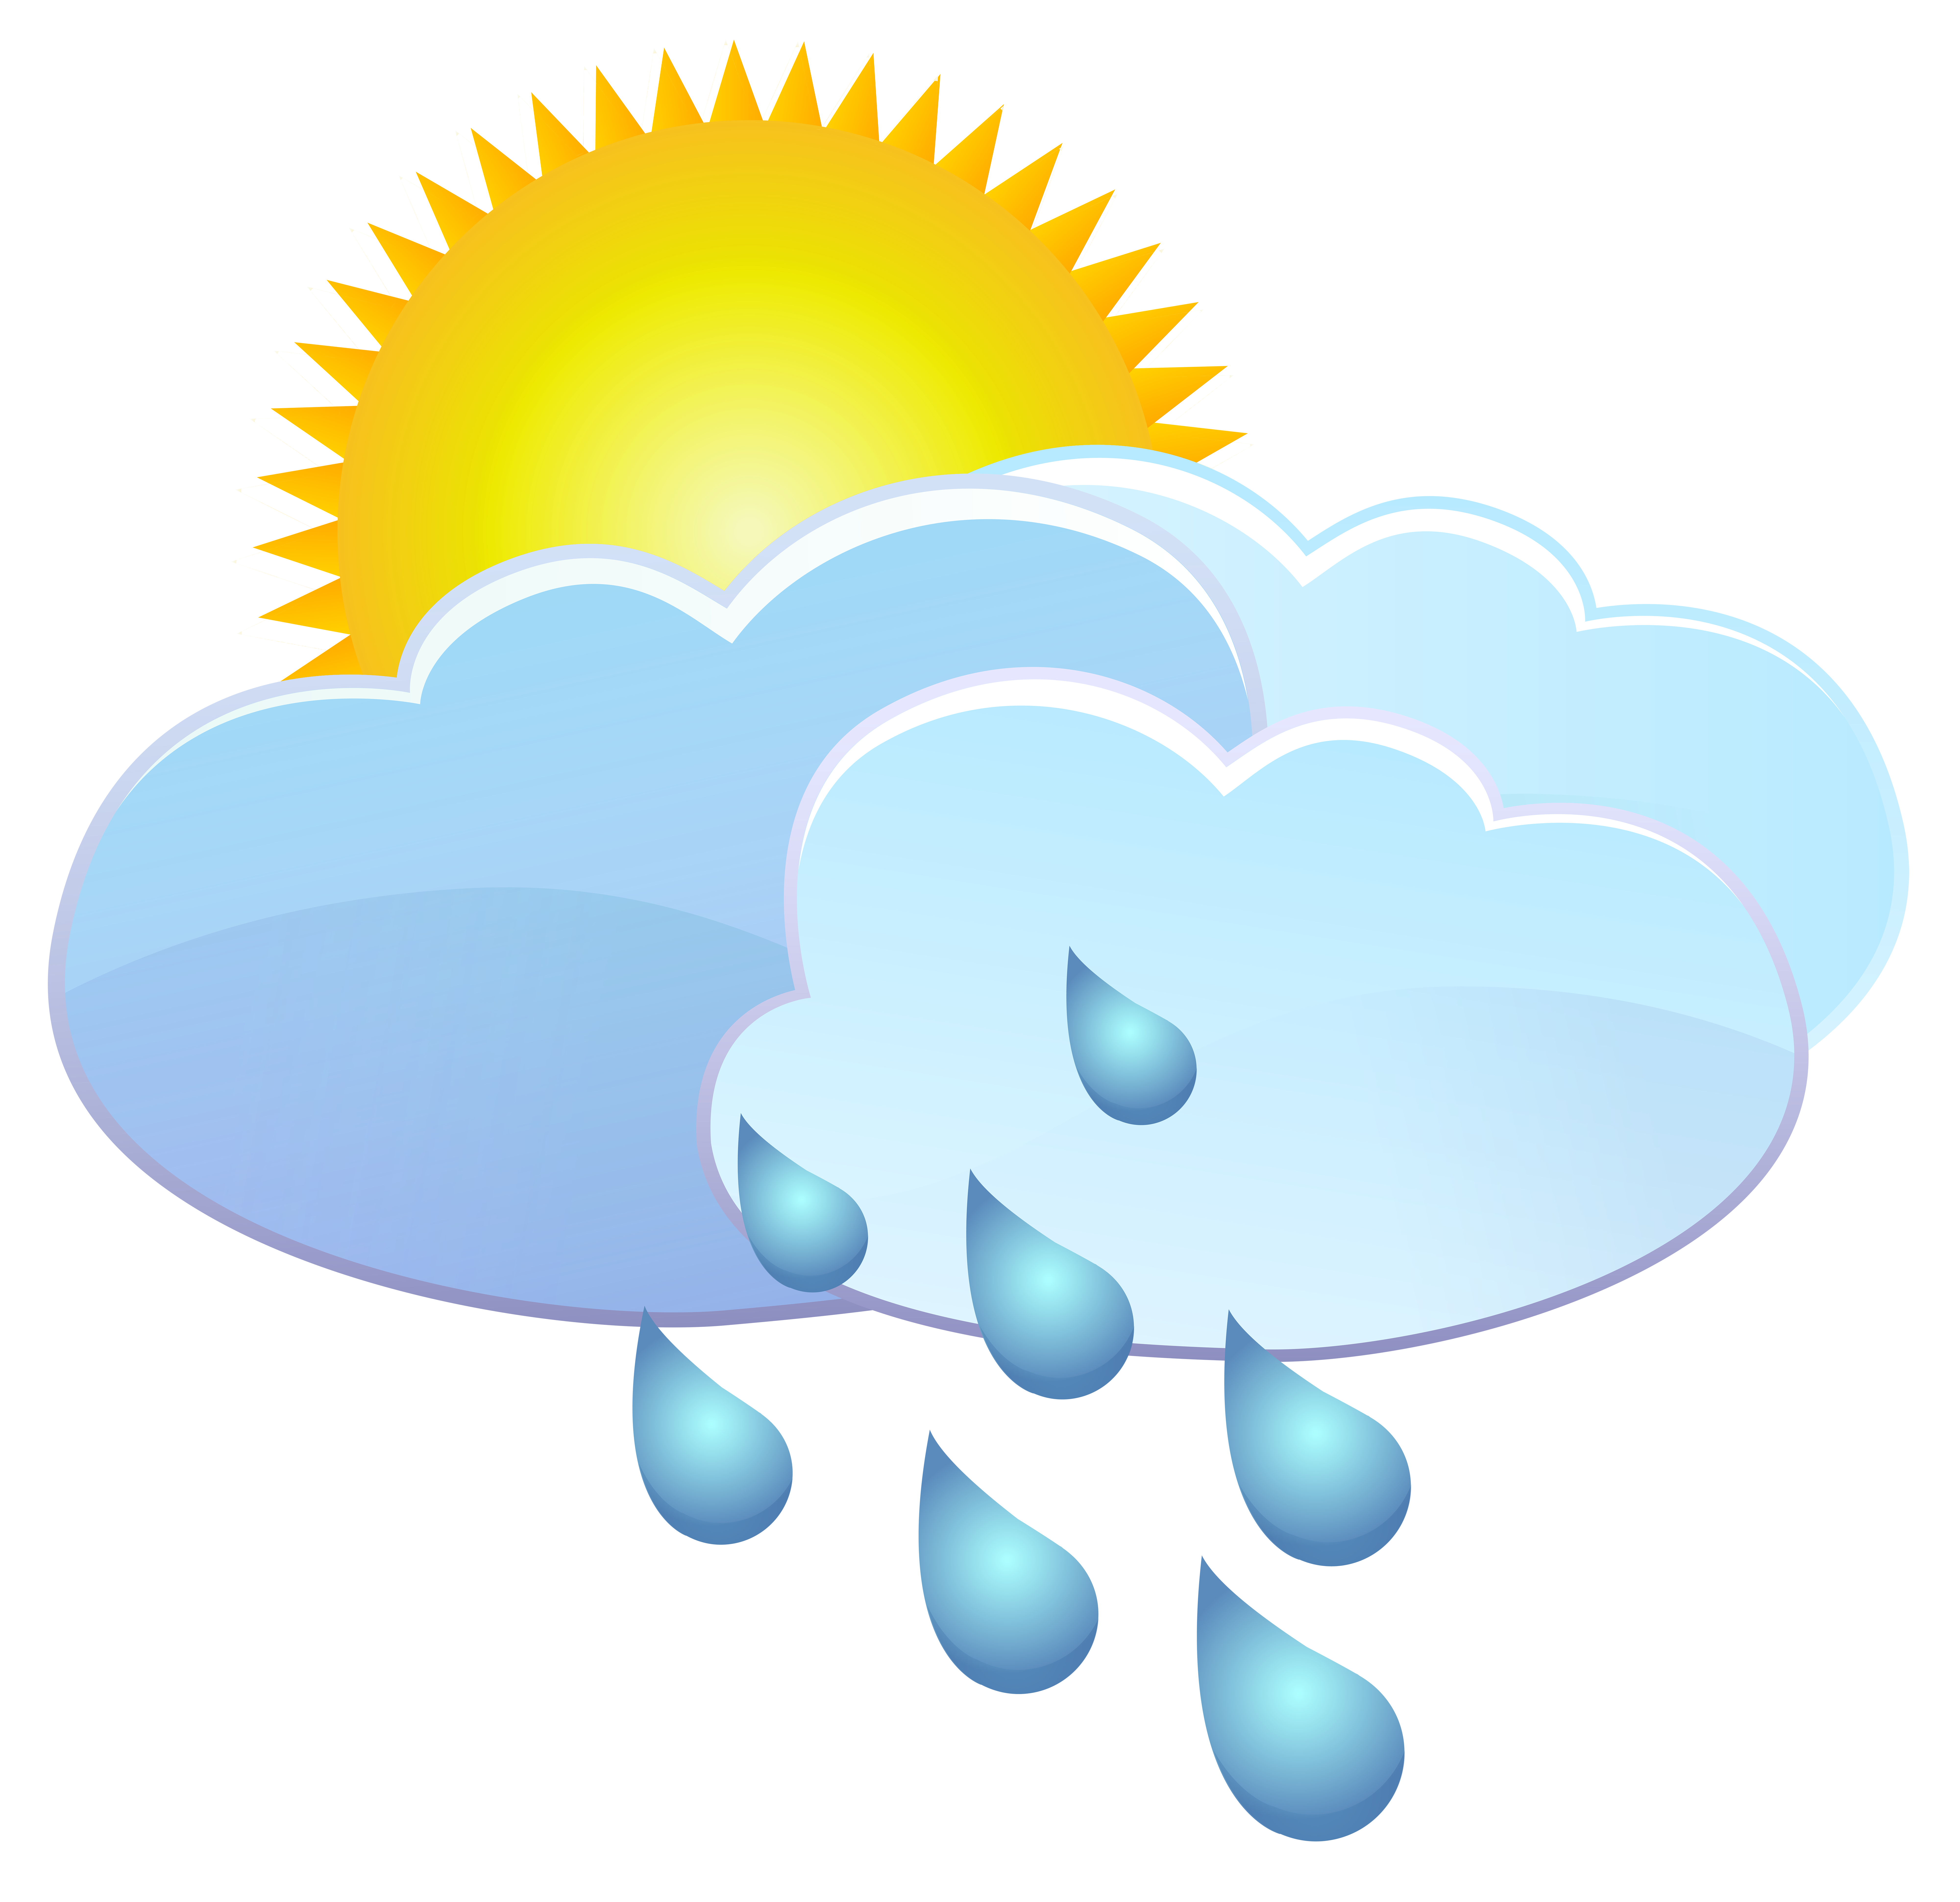 Raining clipart weather icon. Clouds sun and rain